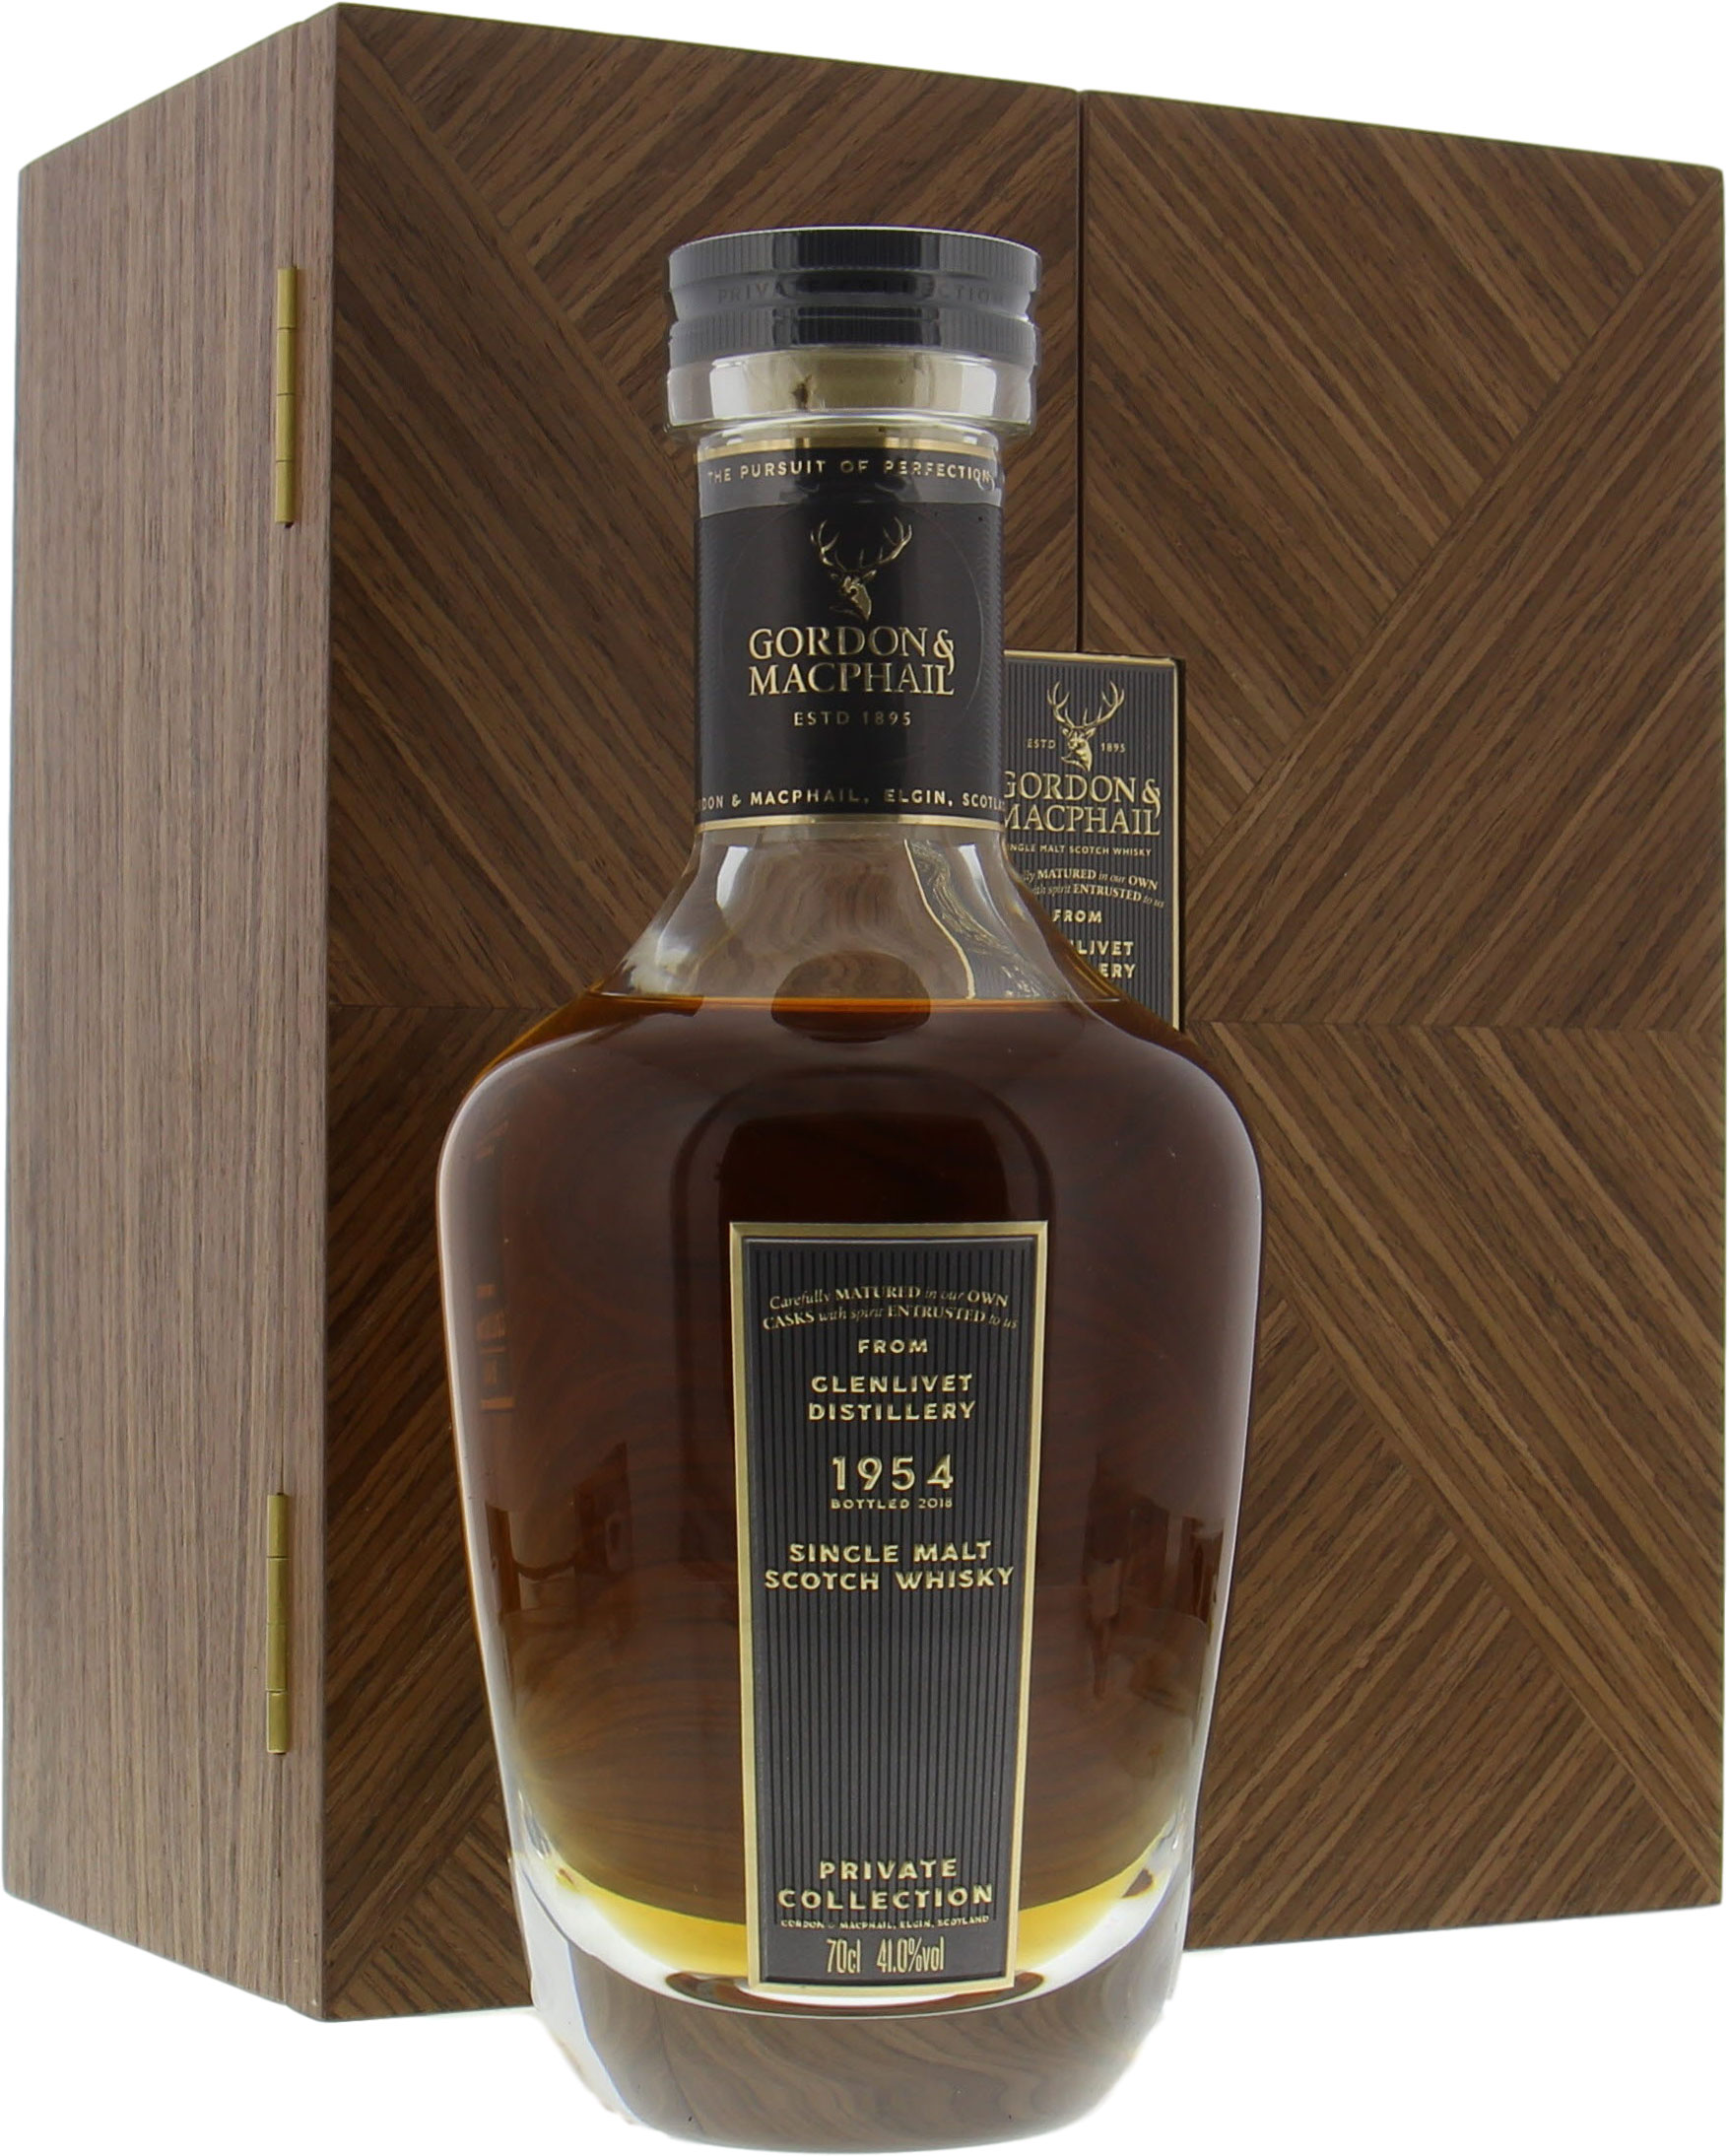 Glenlivet - 1954 Years Old Gordon & MacPhail Private Collection Cask 1412 41% 1954